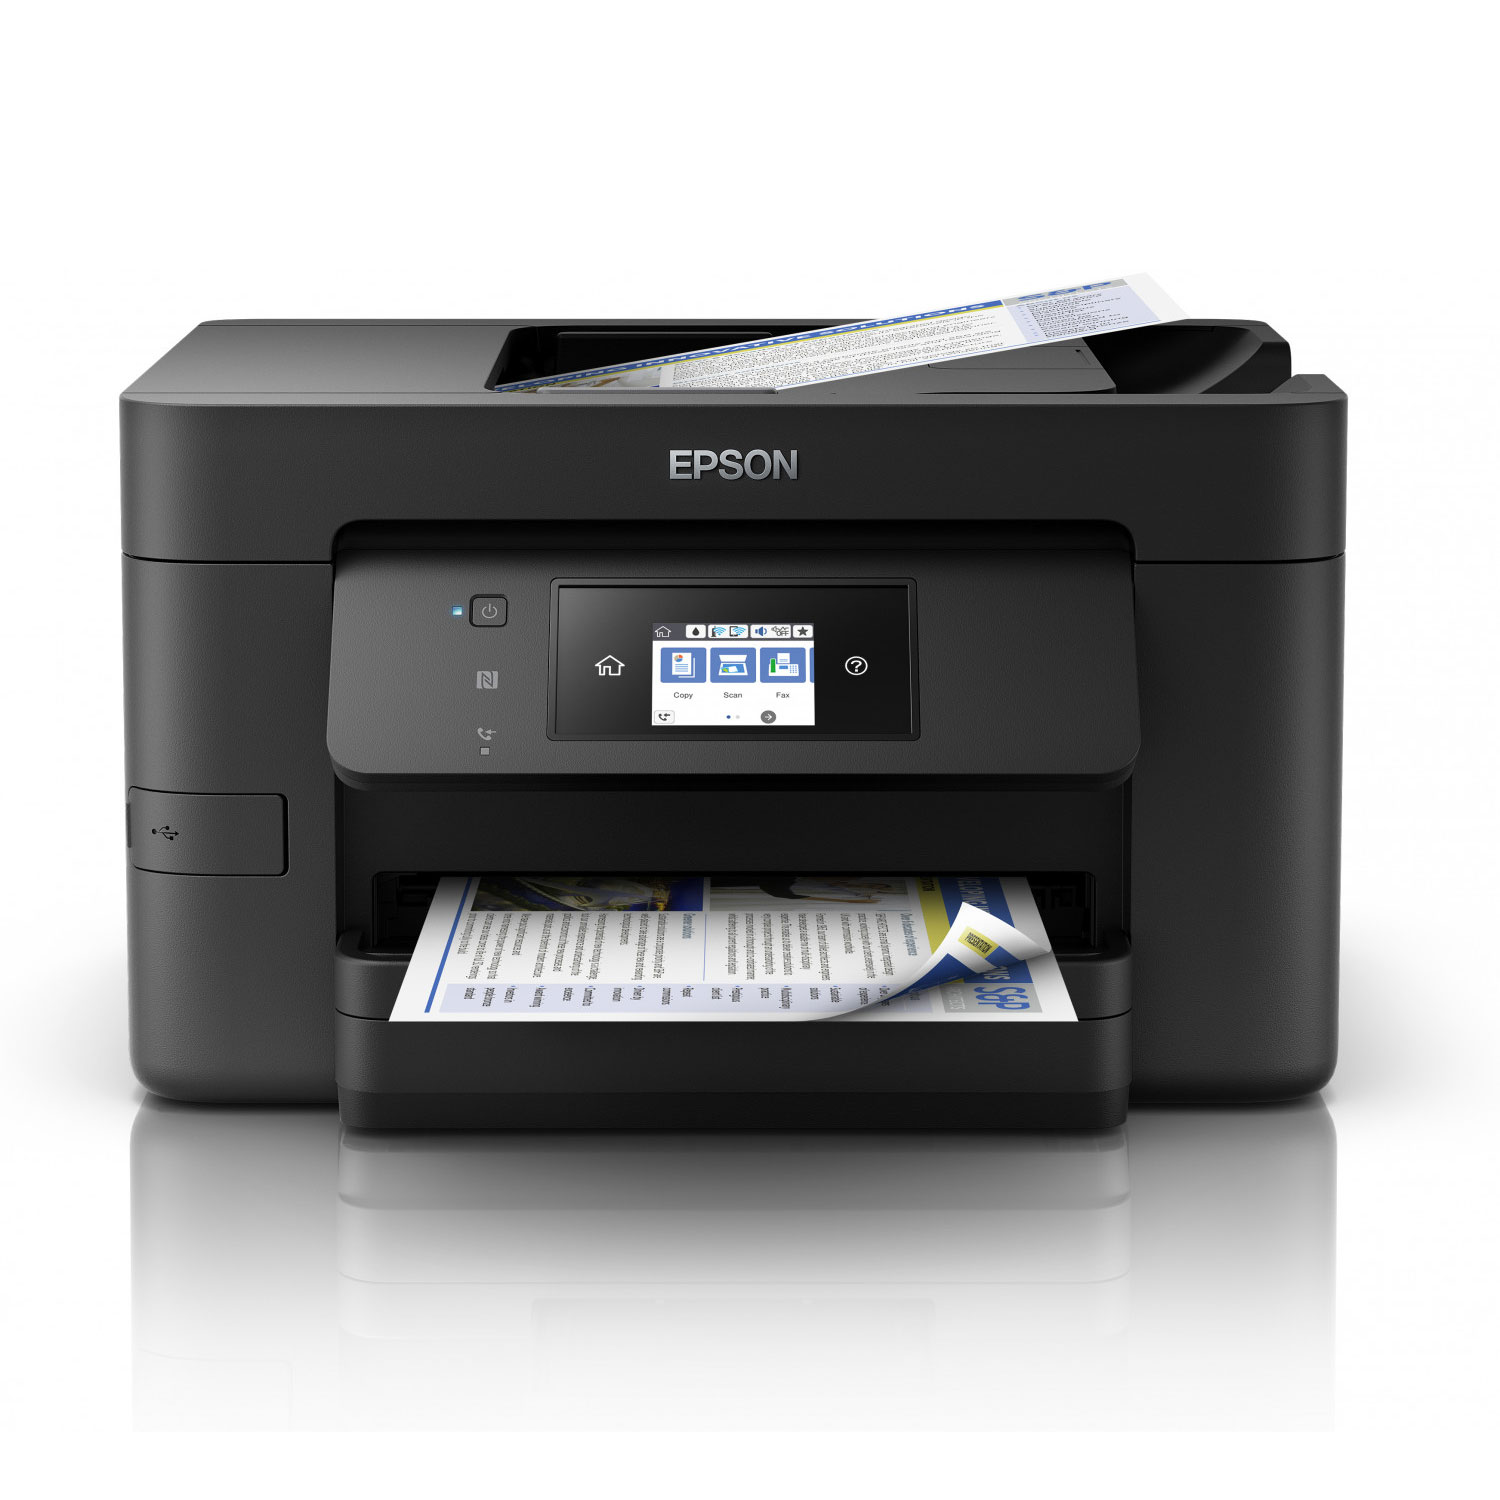 epson workforce wf 3720dwf imprimante multifonction epson sur ldlc. Black Bedroom Furniture Sets. Home Design Ideas